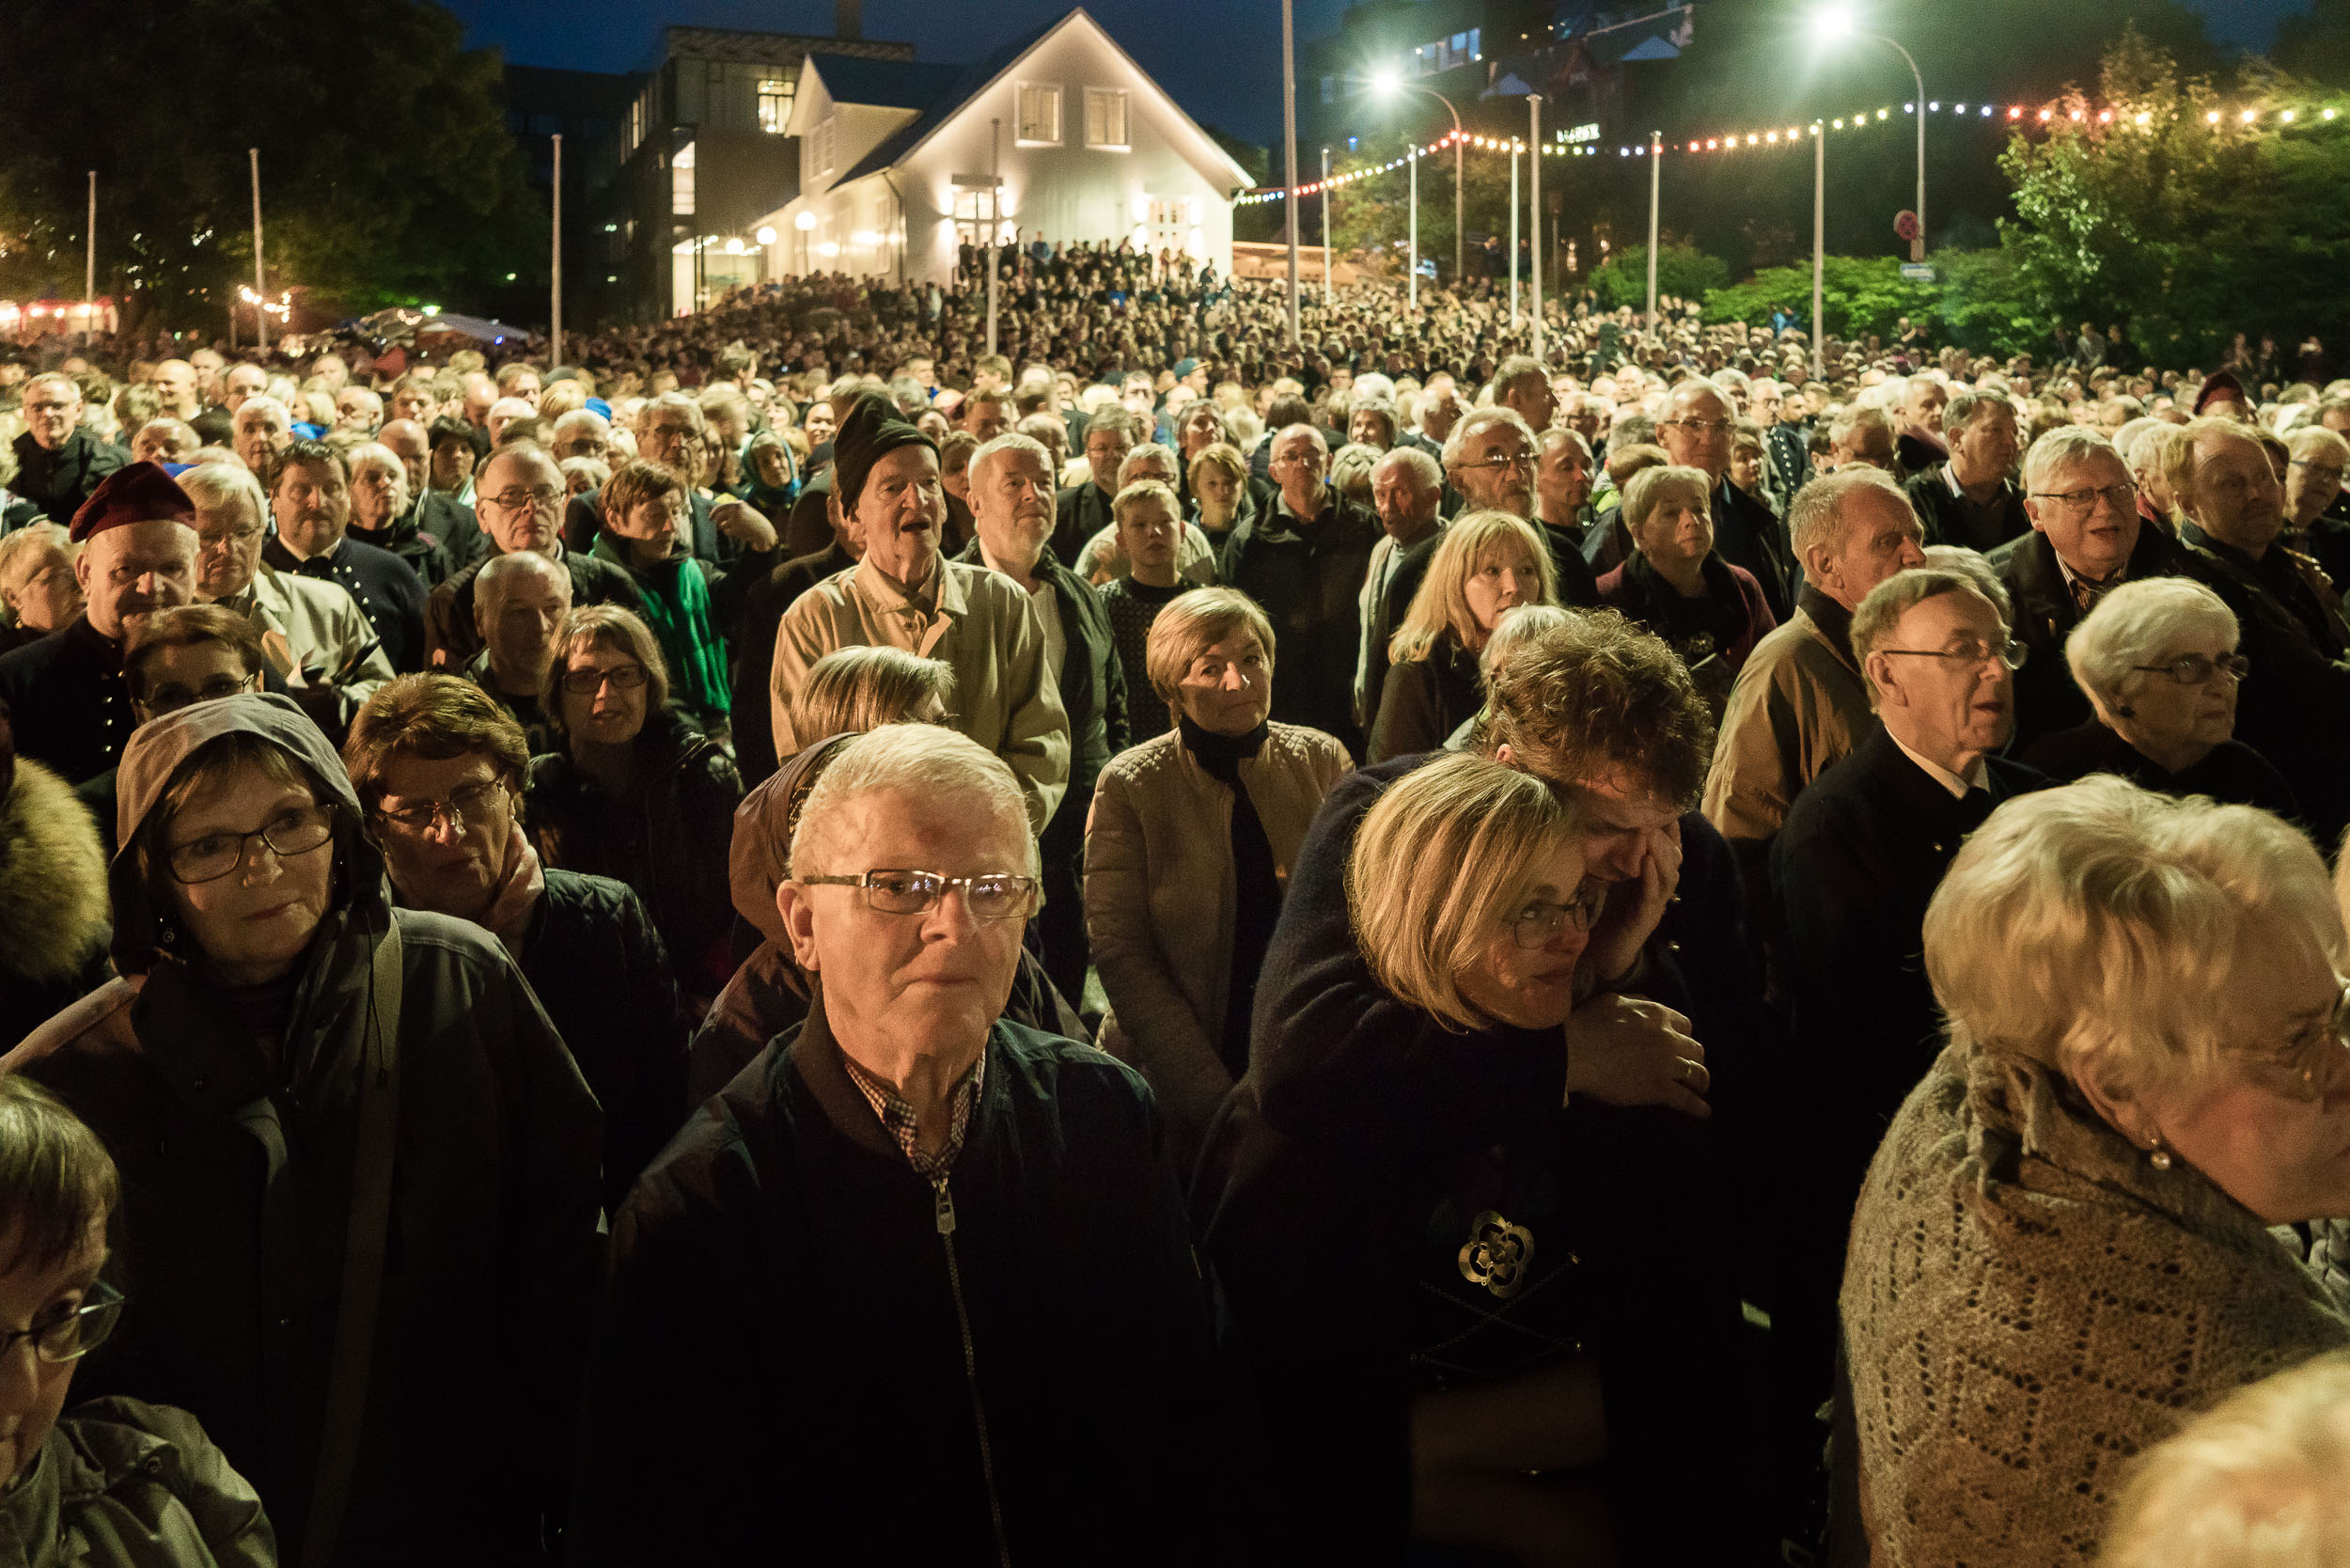 A    large crowd    listens to sombre music from the local    Salvation Army Band    during the    St. Olaf's Day Celebrations    on a summers evening in    Tórshavn, Faroe Islands   .